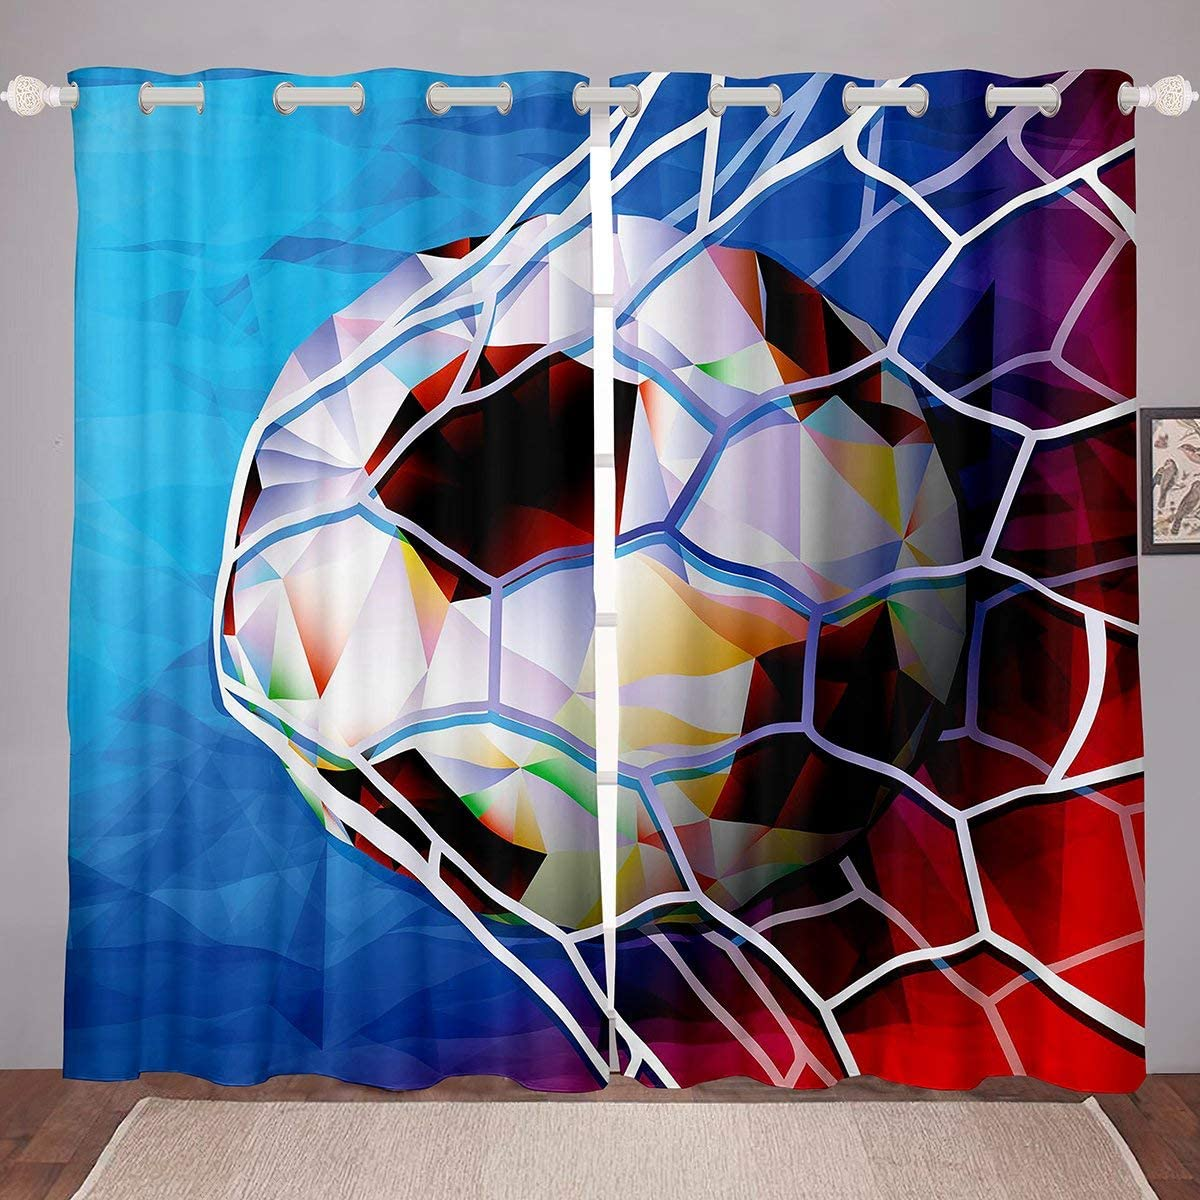 Football Curtains Selling and selling Sports shipfree Theme Bedroom for Livin Window